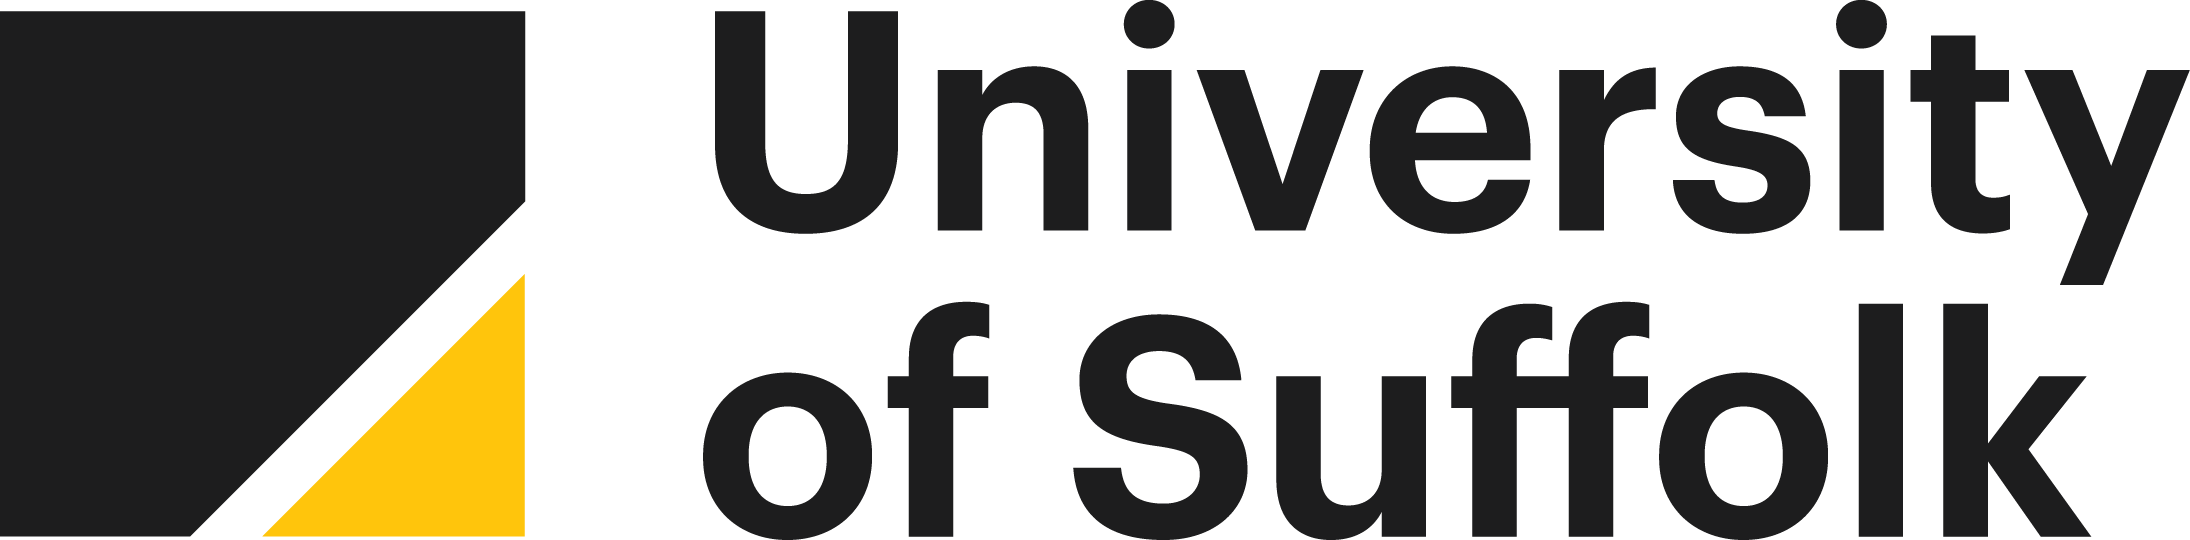 university-of-suffolk-230-logo